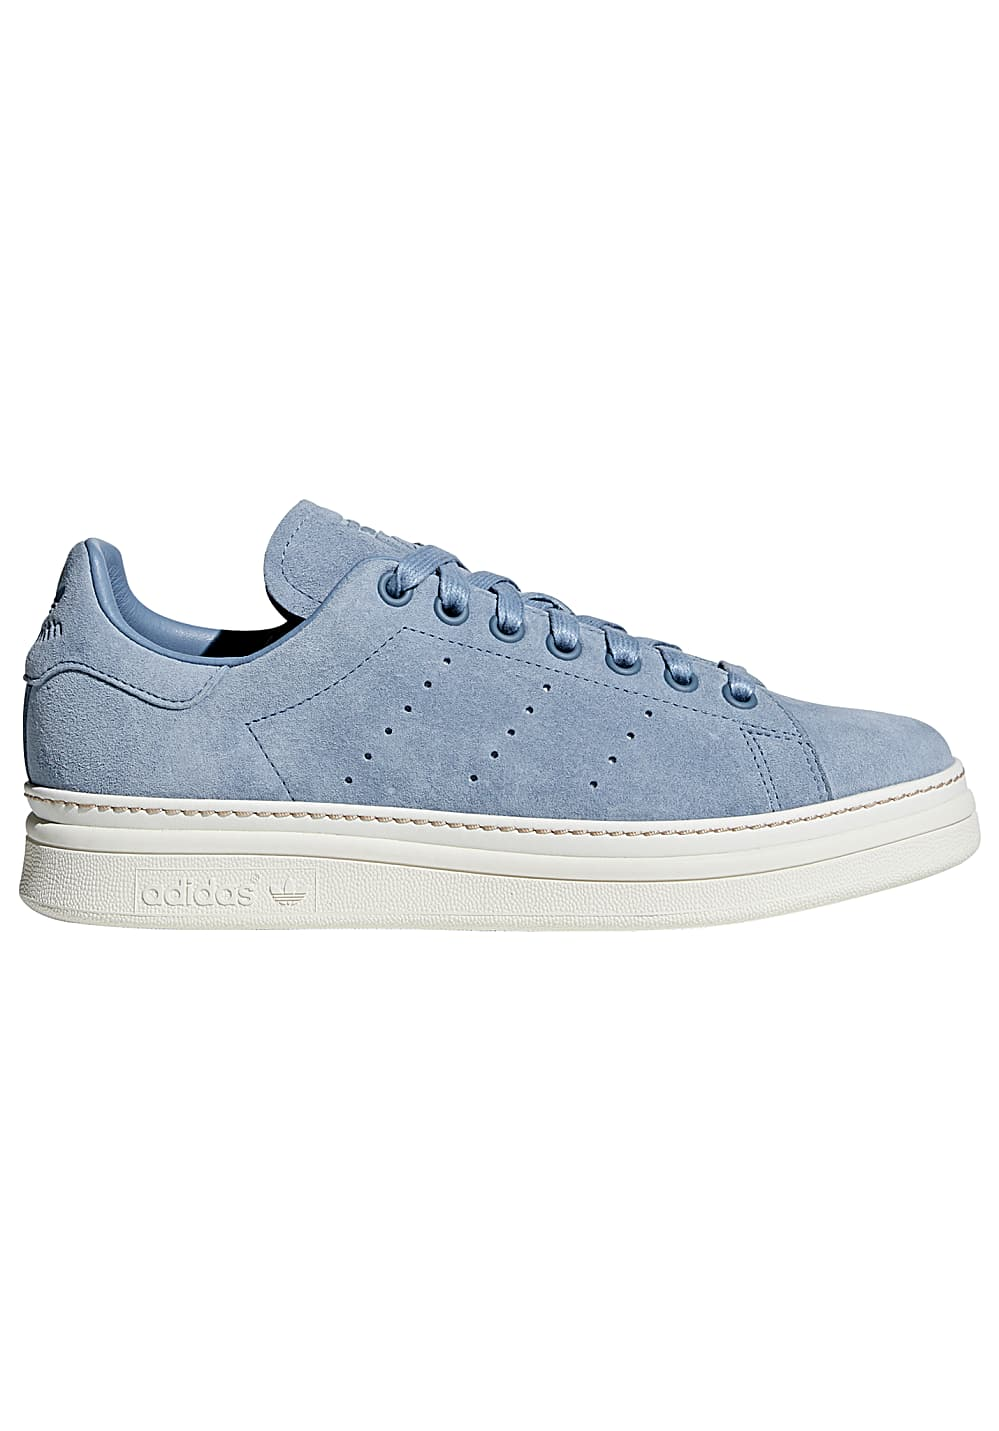 Stan Smith New Bold sneakers